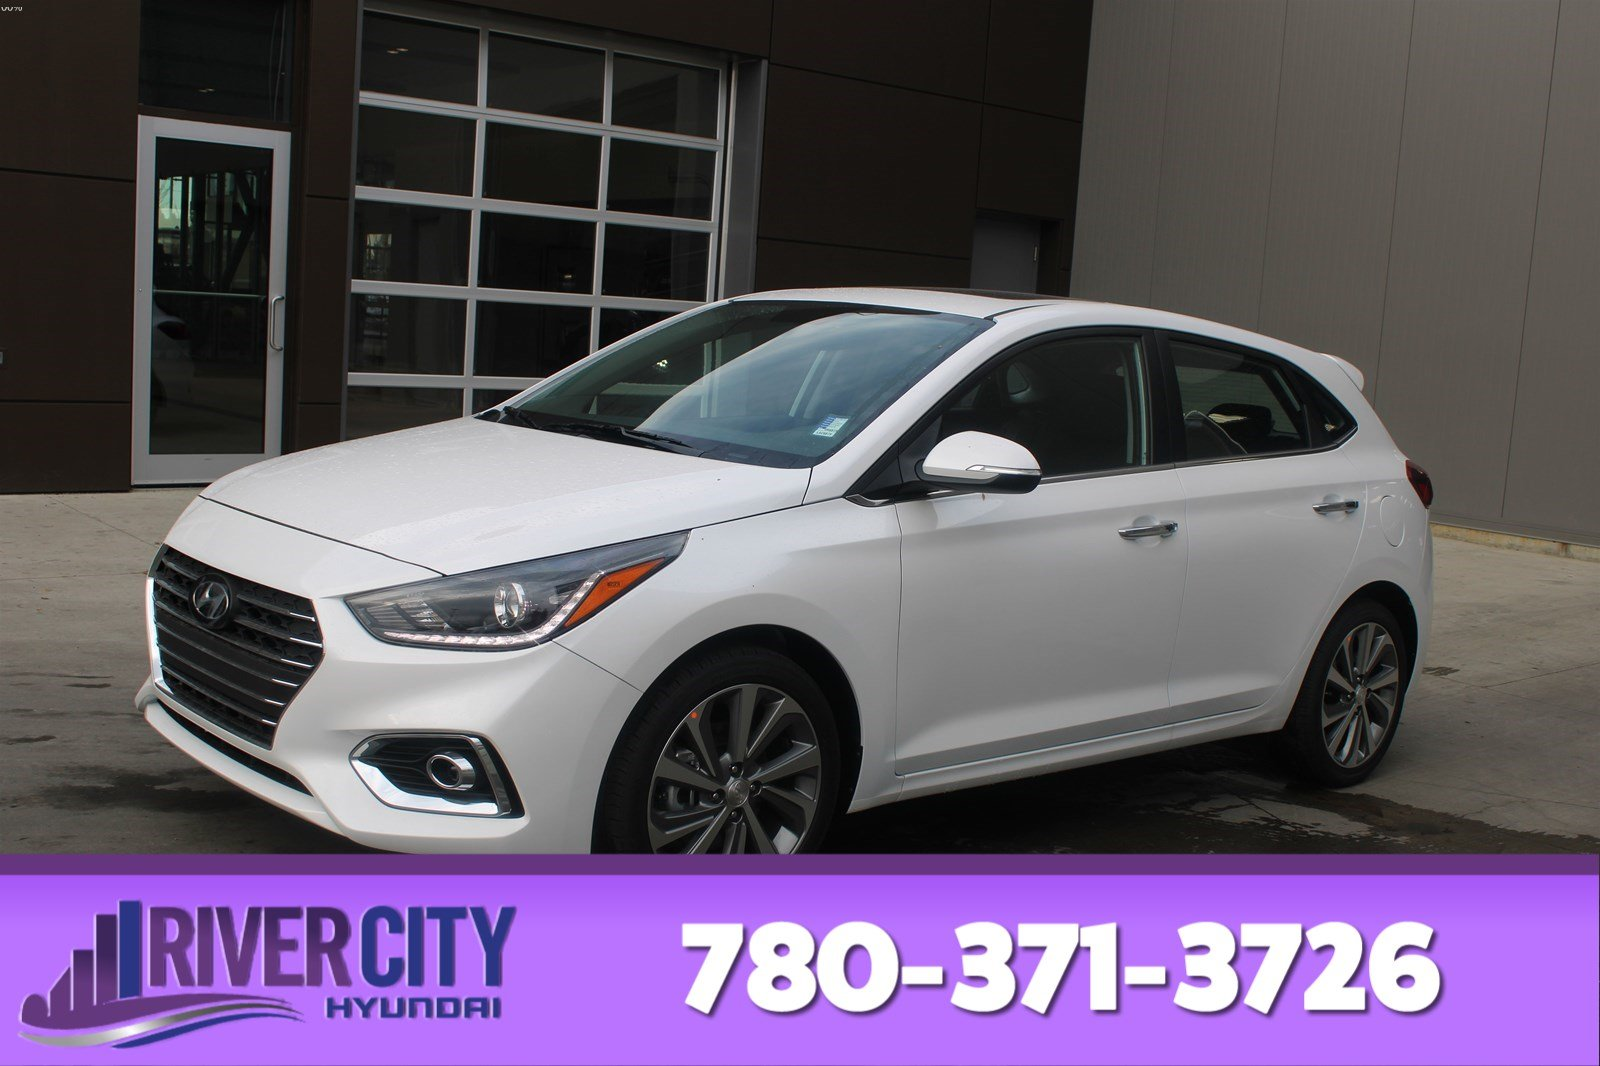 New 2020 Hyundai Accent ULTIMATE IVT 7.0 COLOUR TOUCHSCREEN,REARVIEW CAMERA,HEATED FRONT SEATS/STEERING WH,ANDROID AUTO/APPL